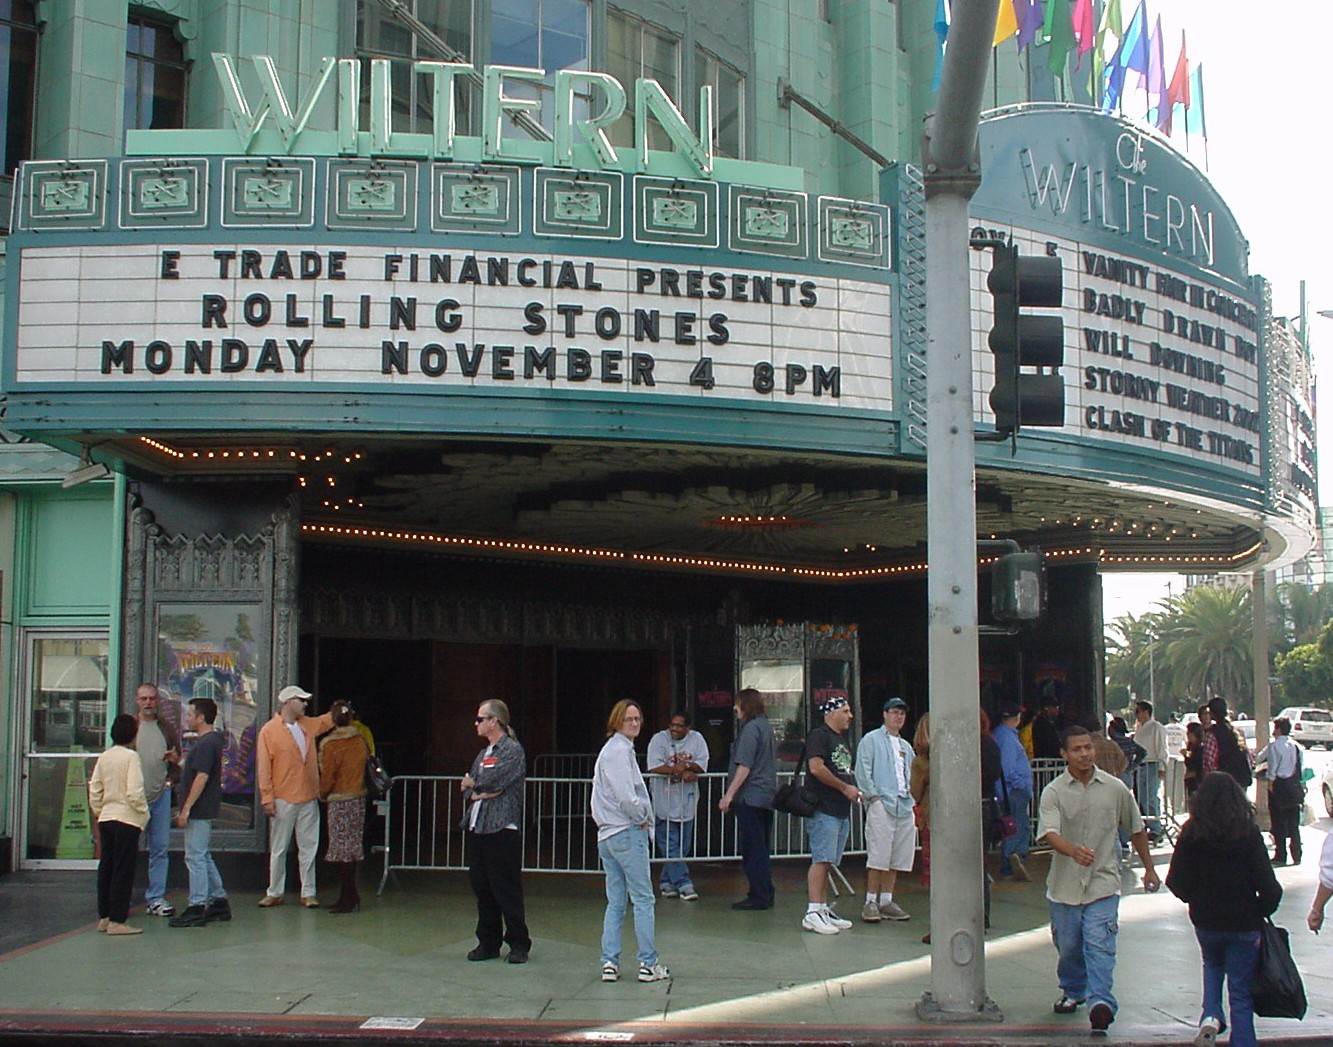 The Rolling Stones Live At The Wiltern Theatre Los